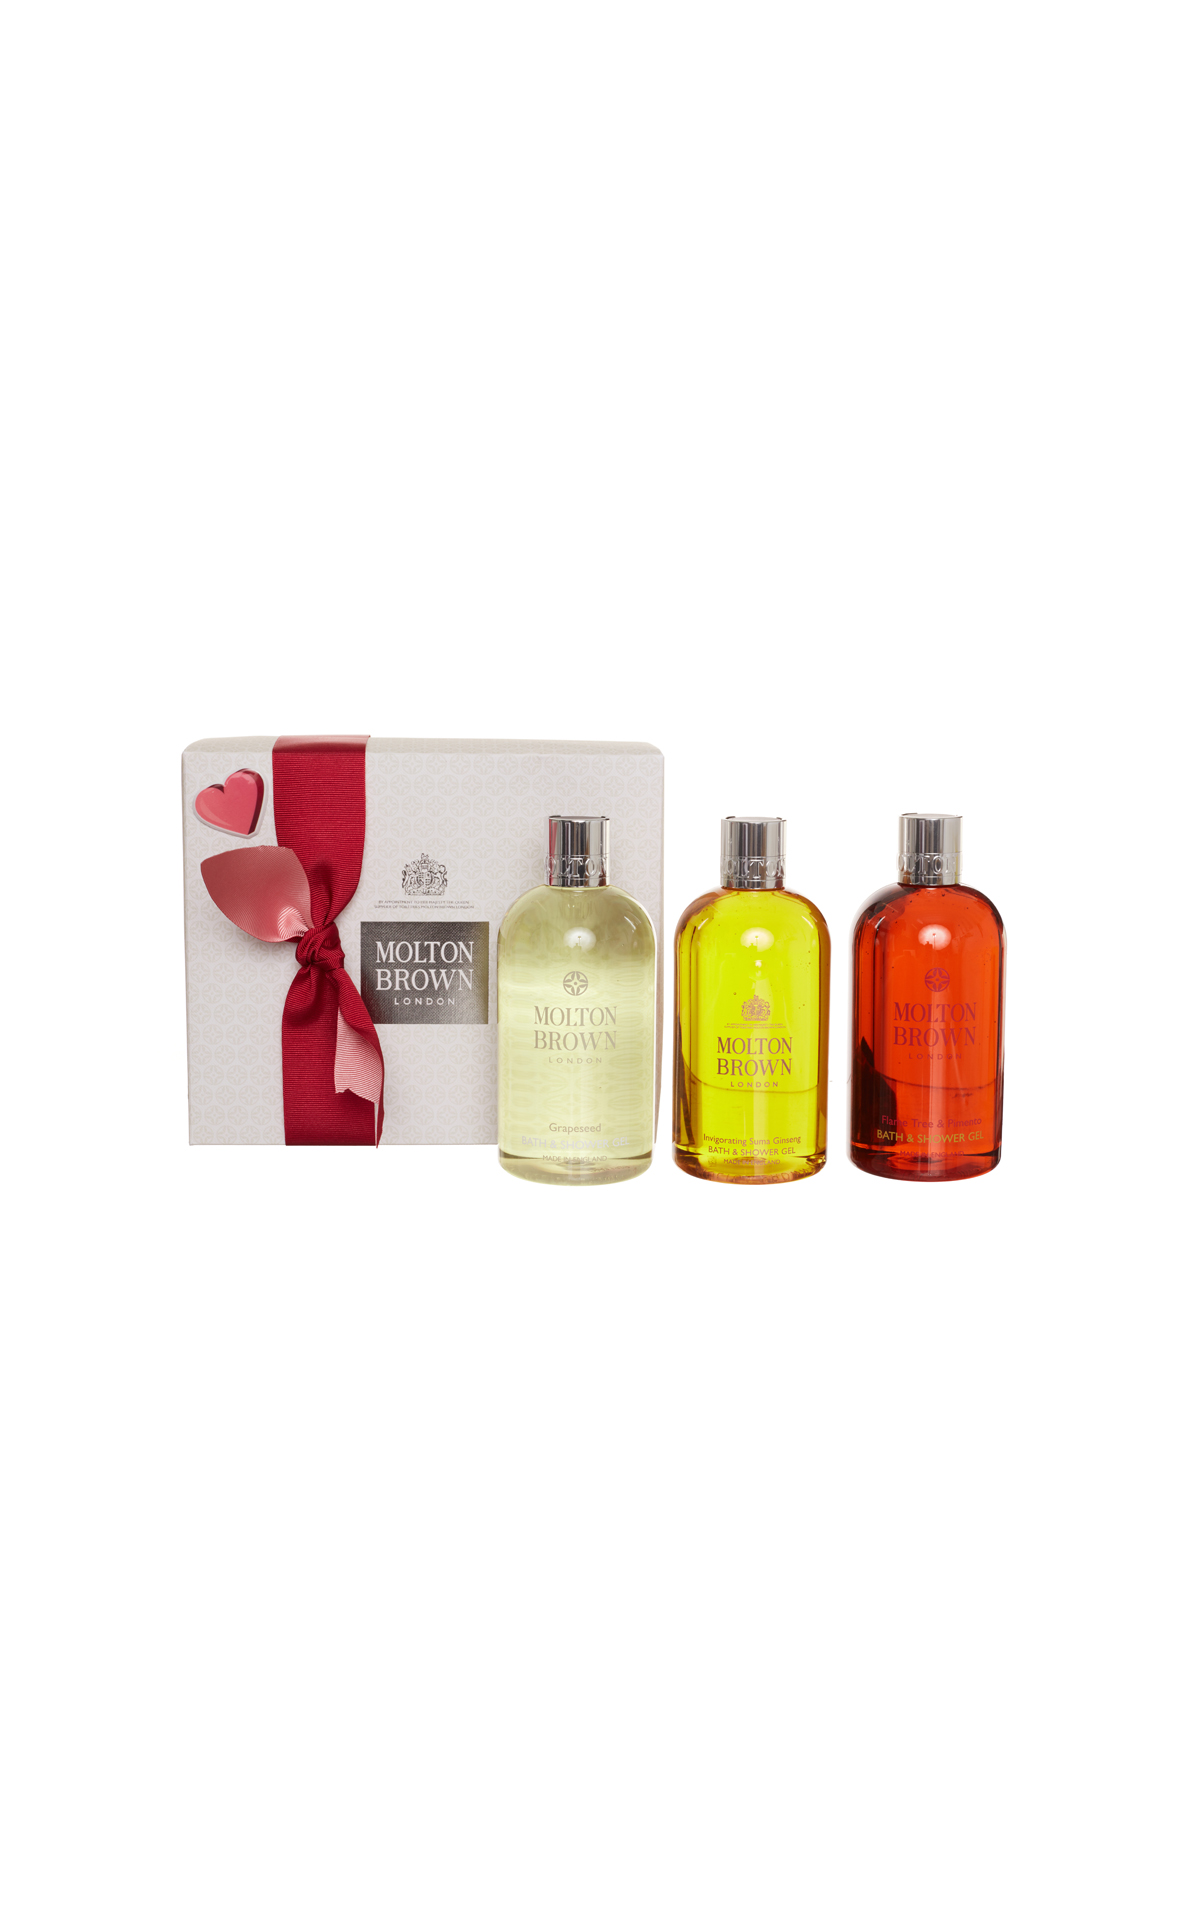 Molton Brown Gift set for him from Bicester Village